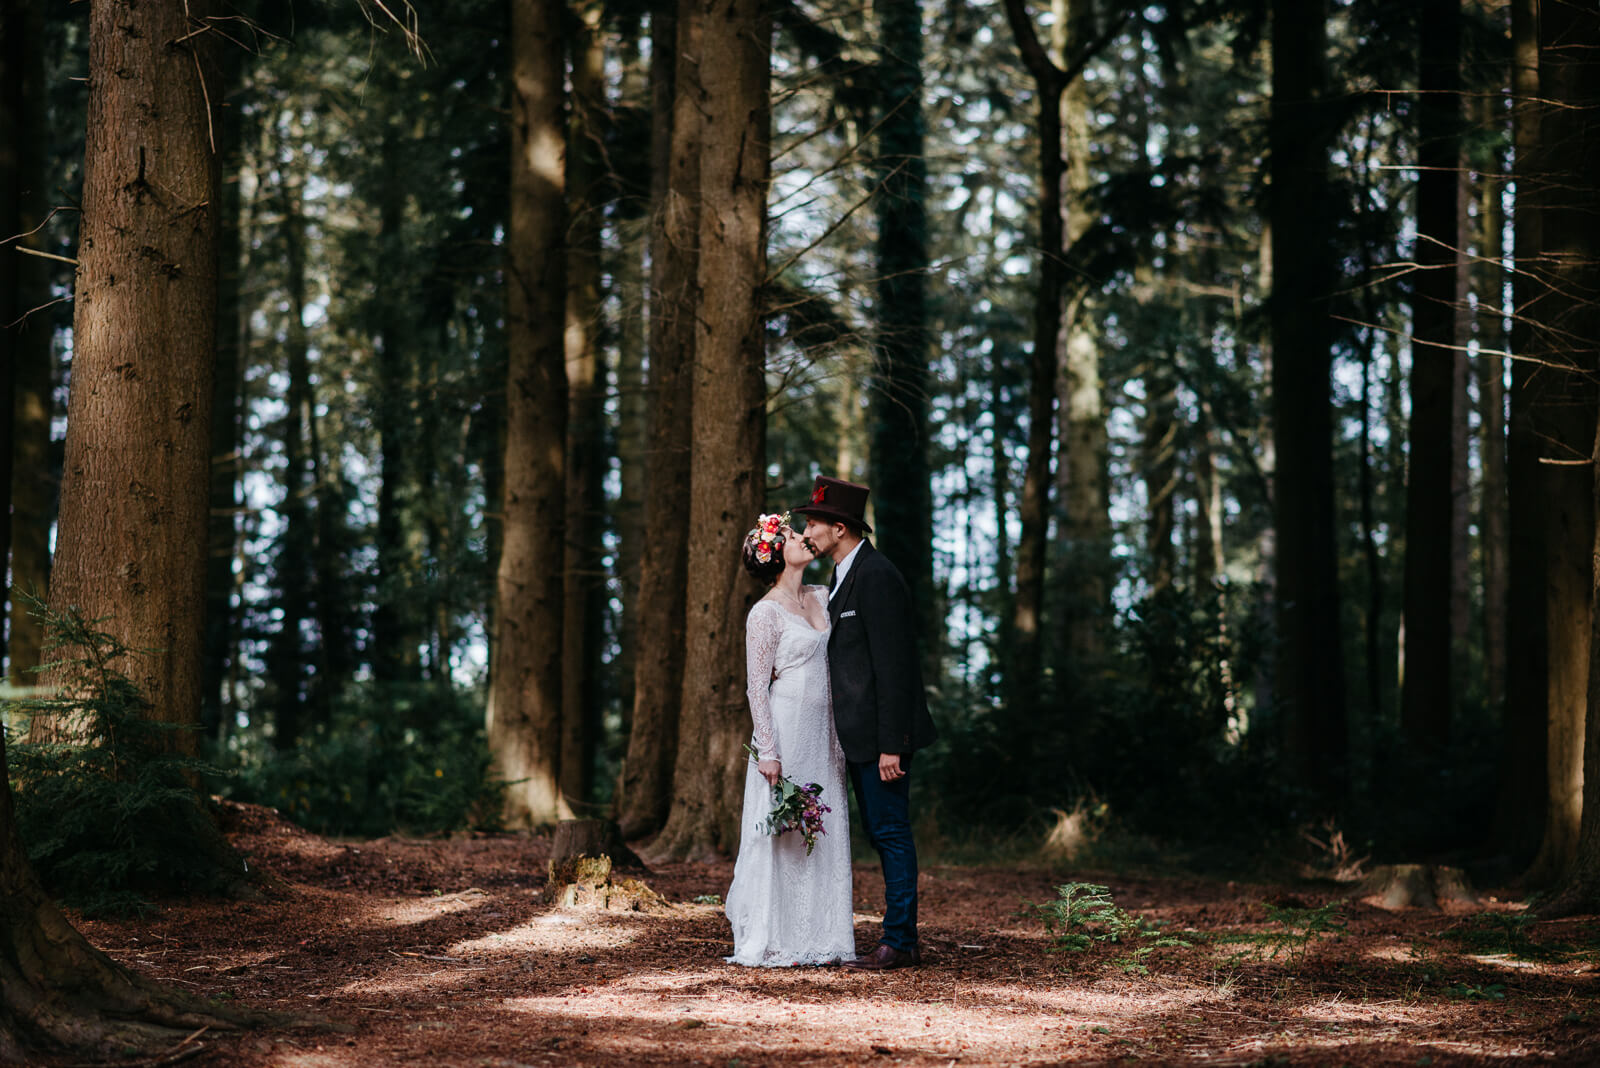 Couple portrait after their autumn woodland wedding in the New Forest, Hampshire